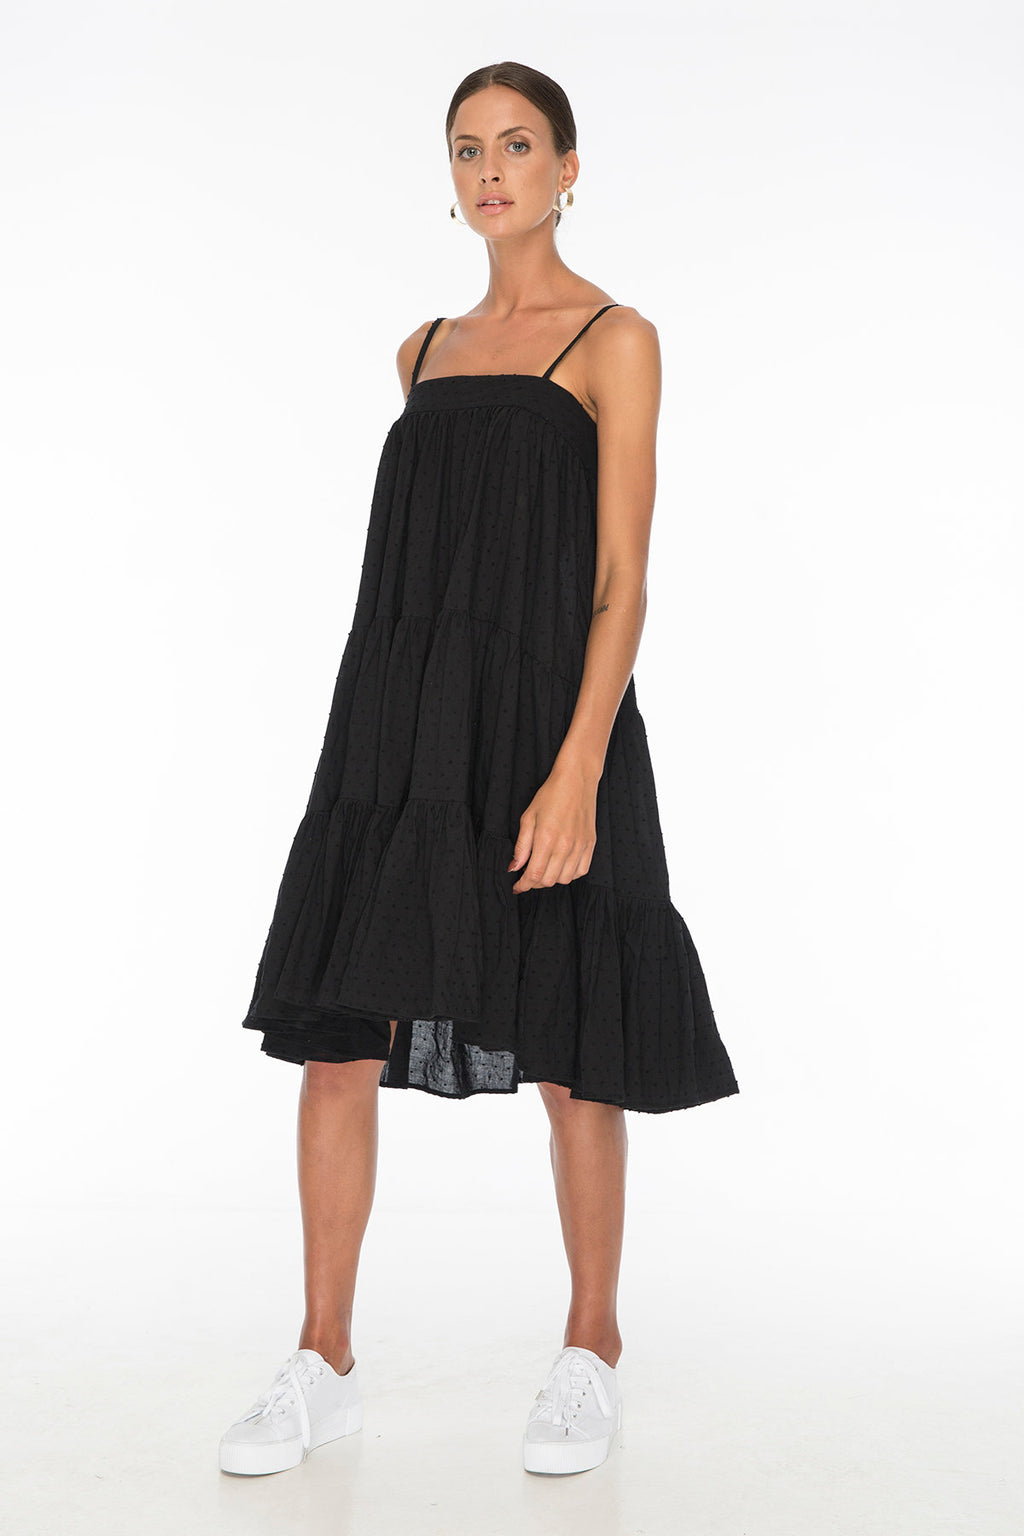 TSO-Dolly Jones Black Dress - Zuttion